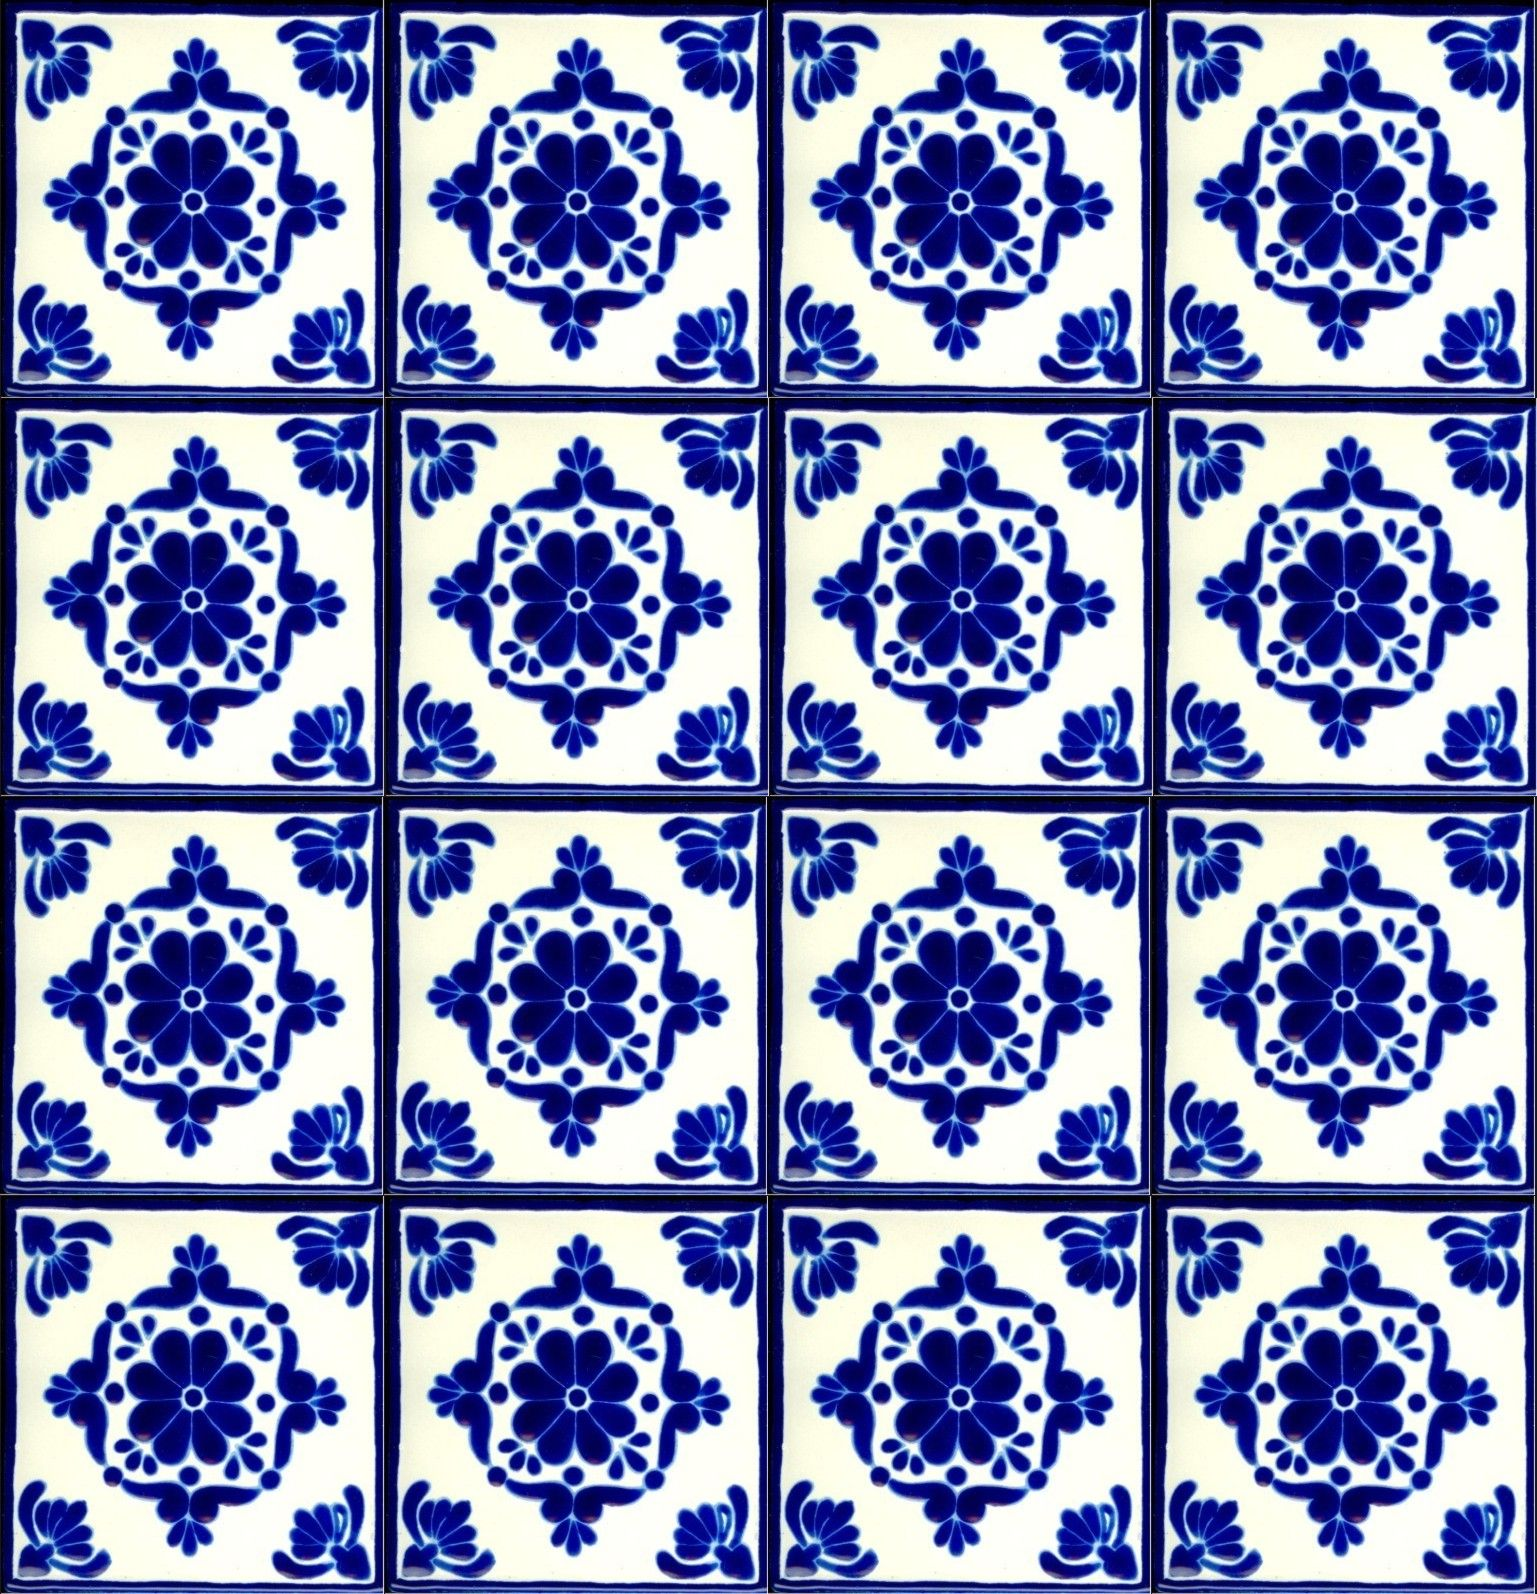 This tiles are perfect for house beautification s